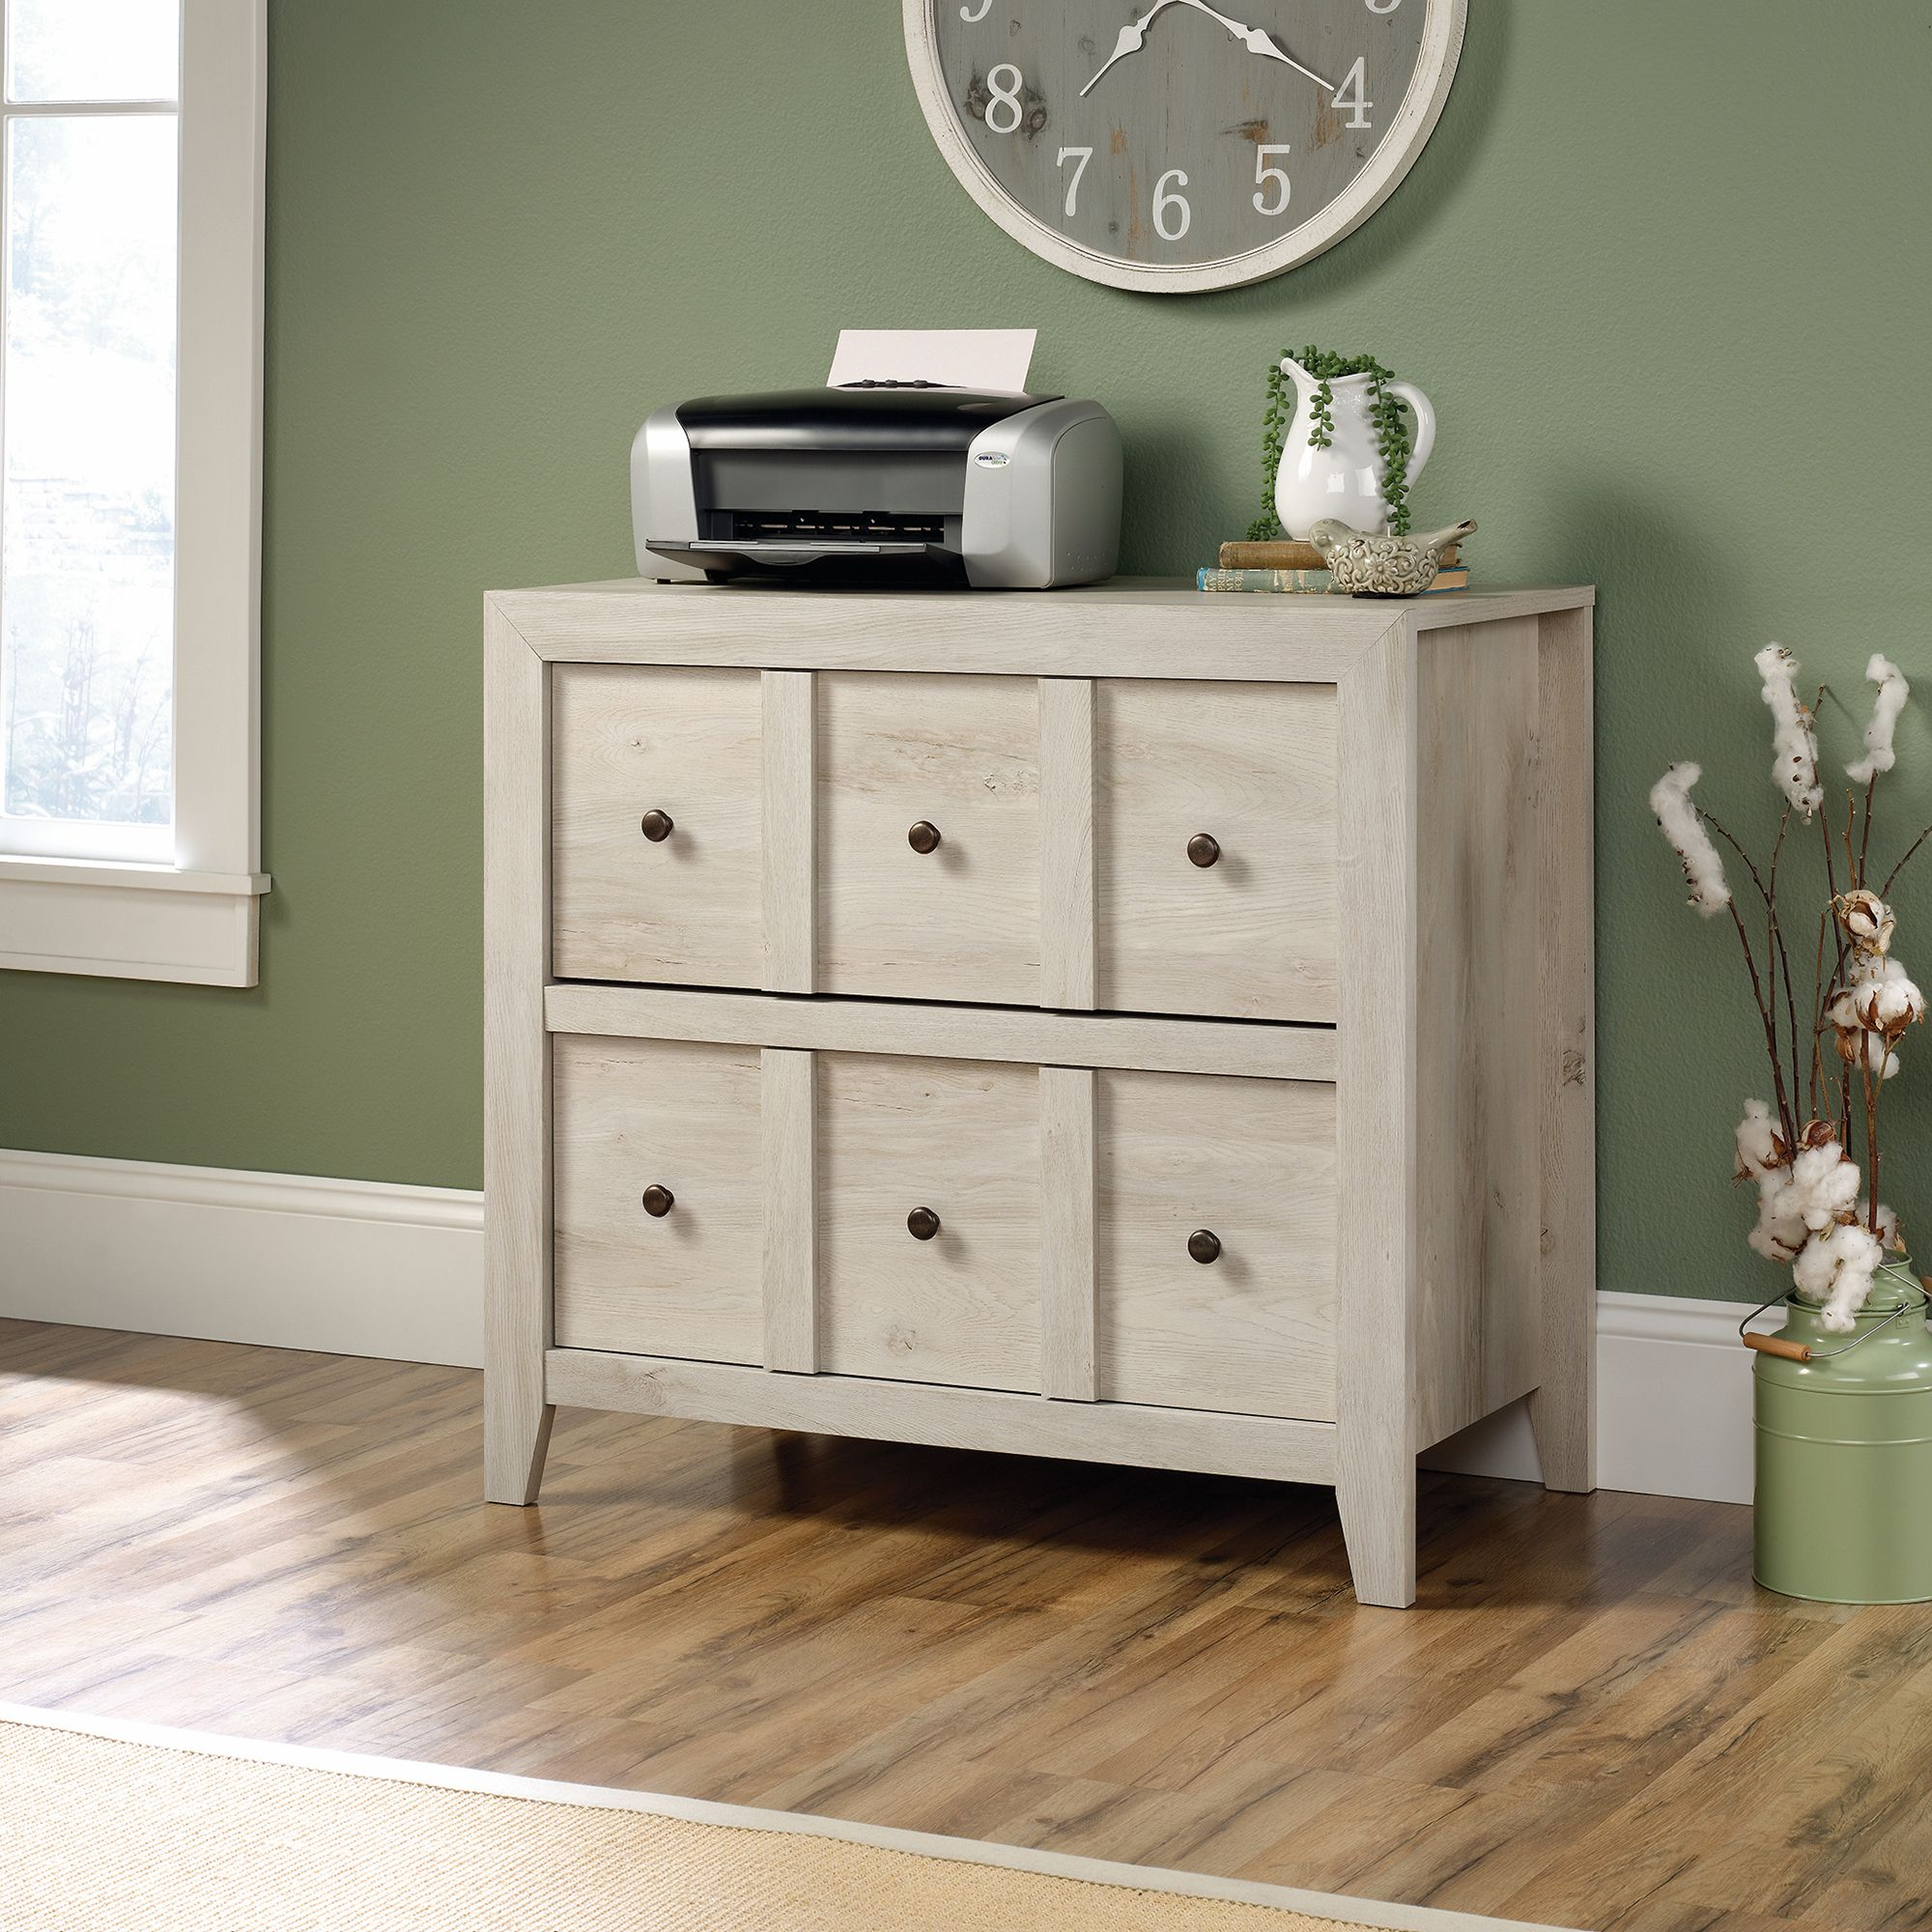 Home Office Furniture Manufacturers: Filing Cabinet, 2 Drawer File Cabinet